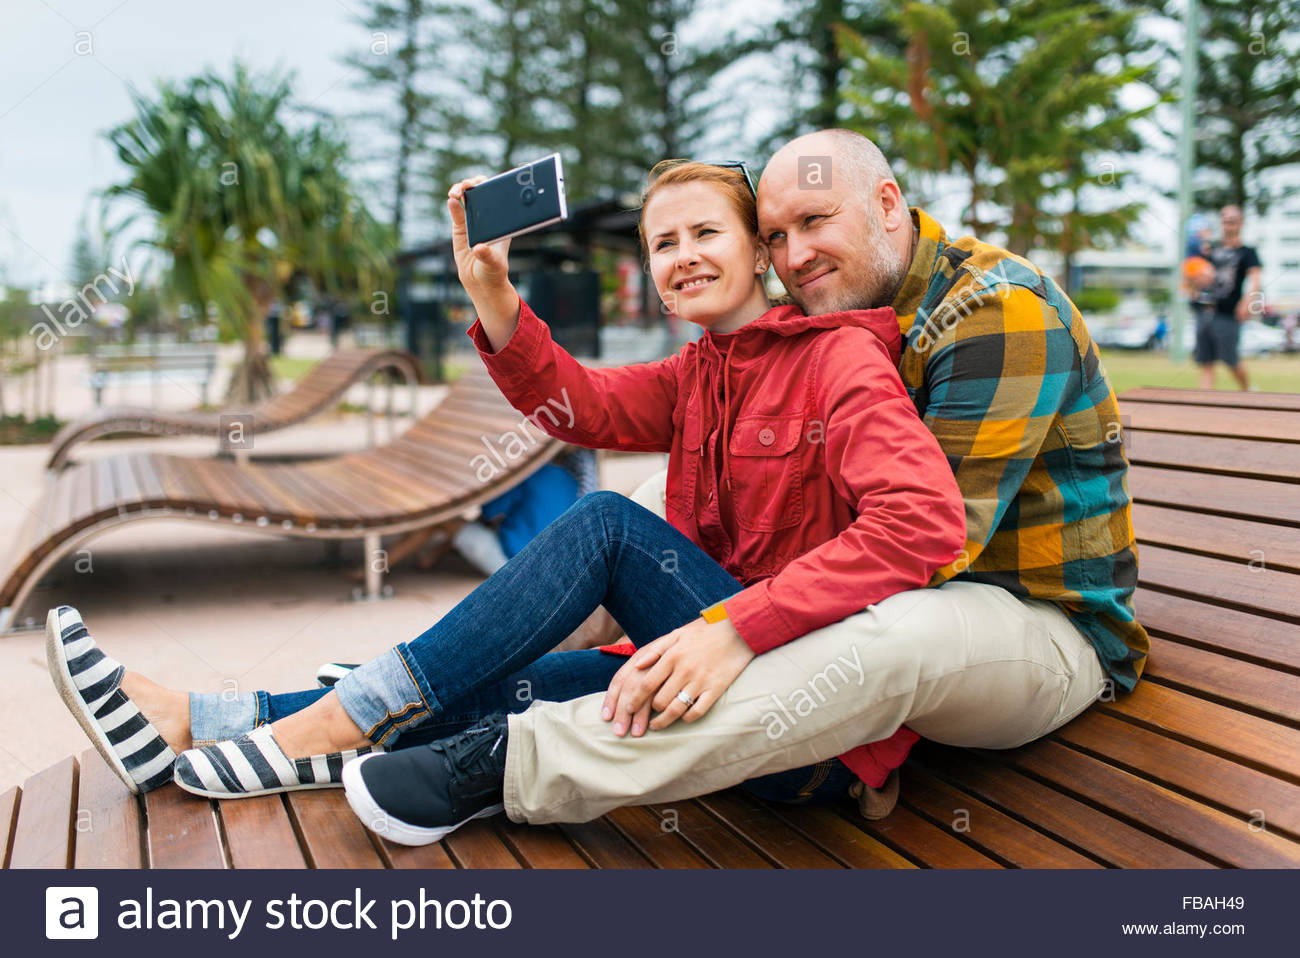 Australia, Queensland, Mid-adult couple taking selfie on bench in park - Stock Image